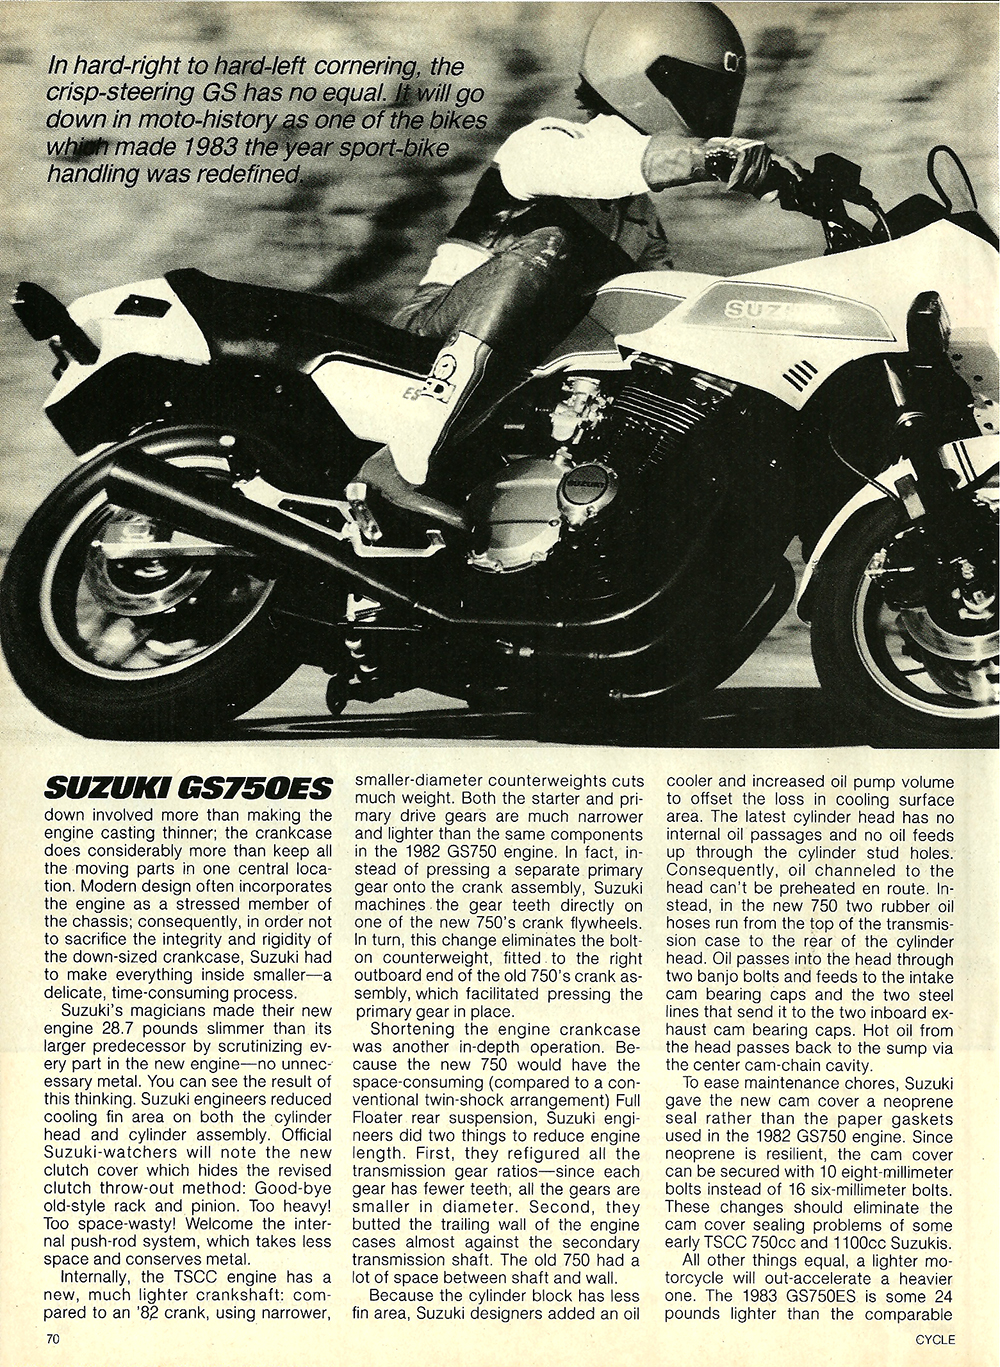 1983 Suzuki GS750ES road test 3.jpg